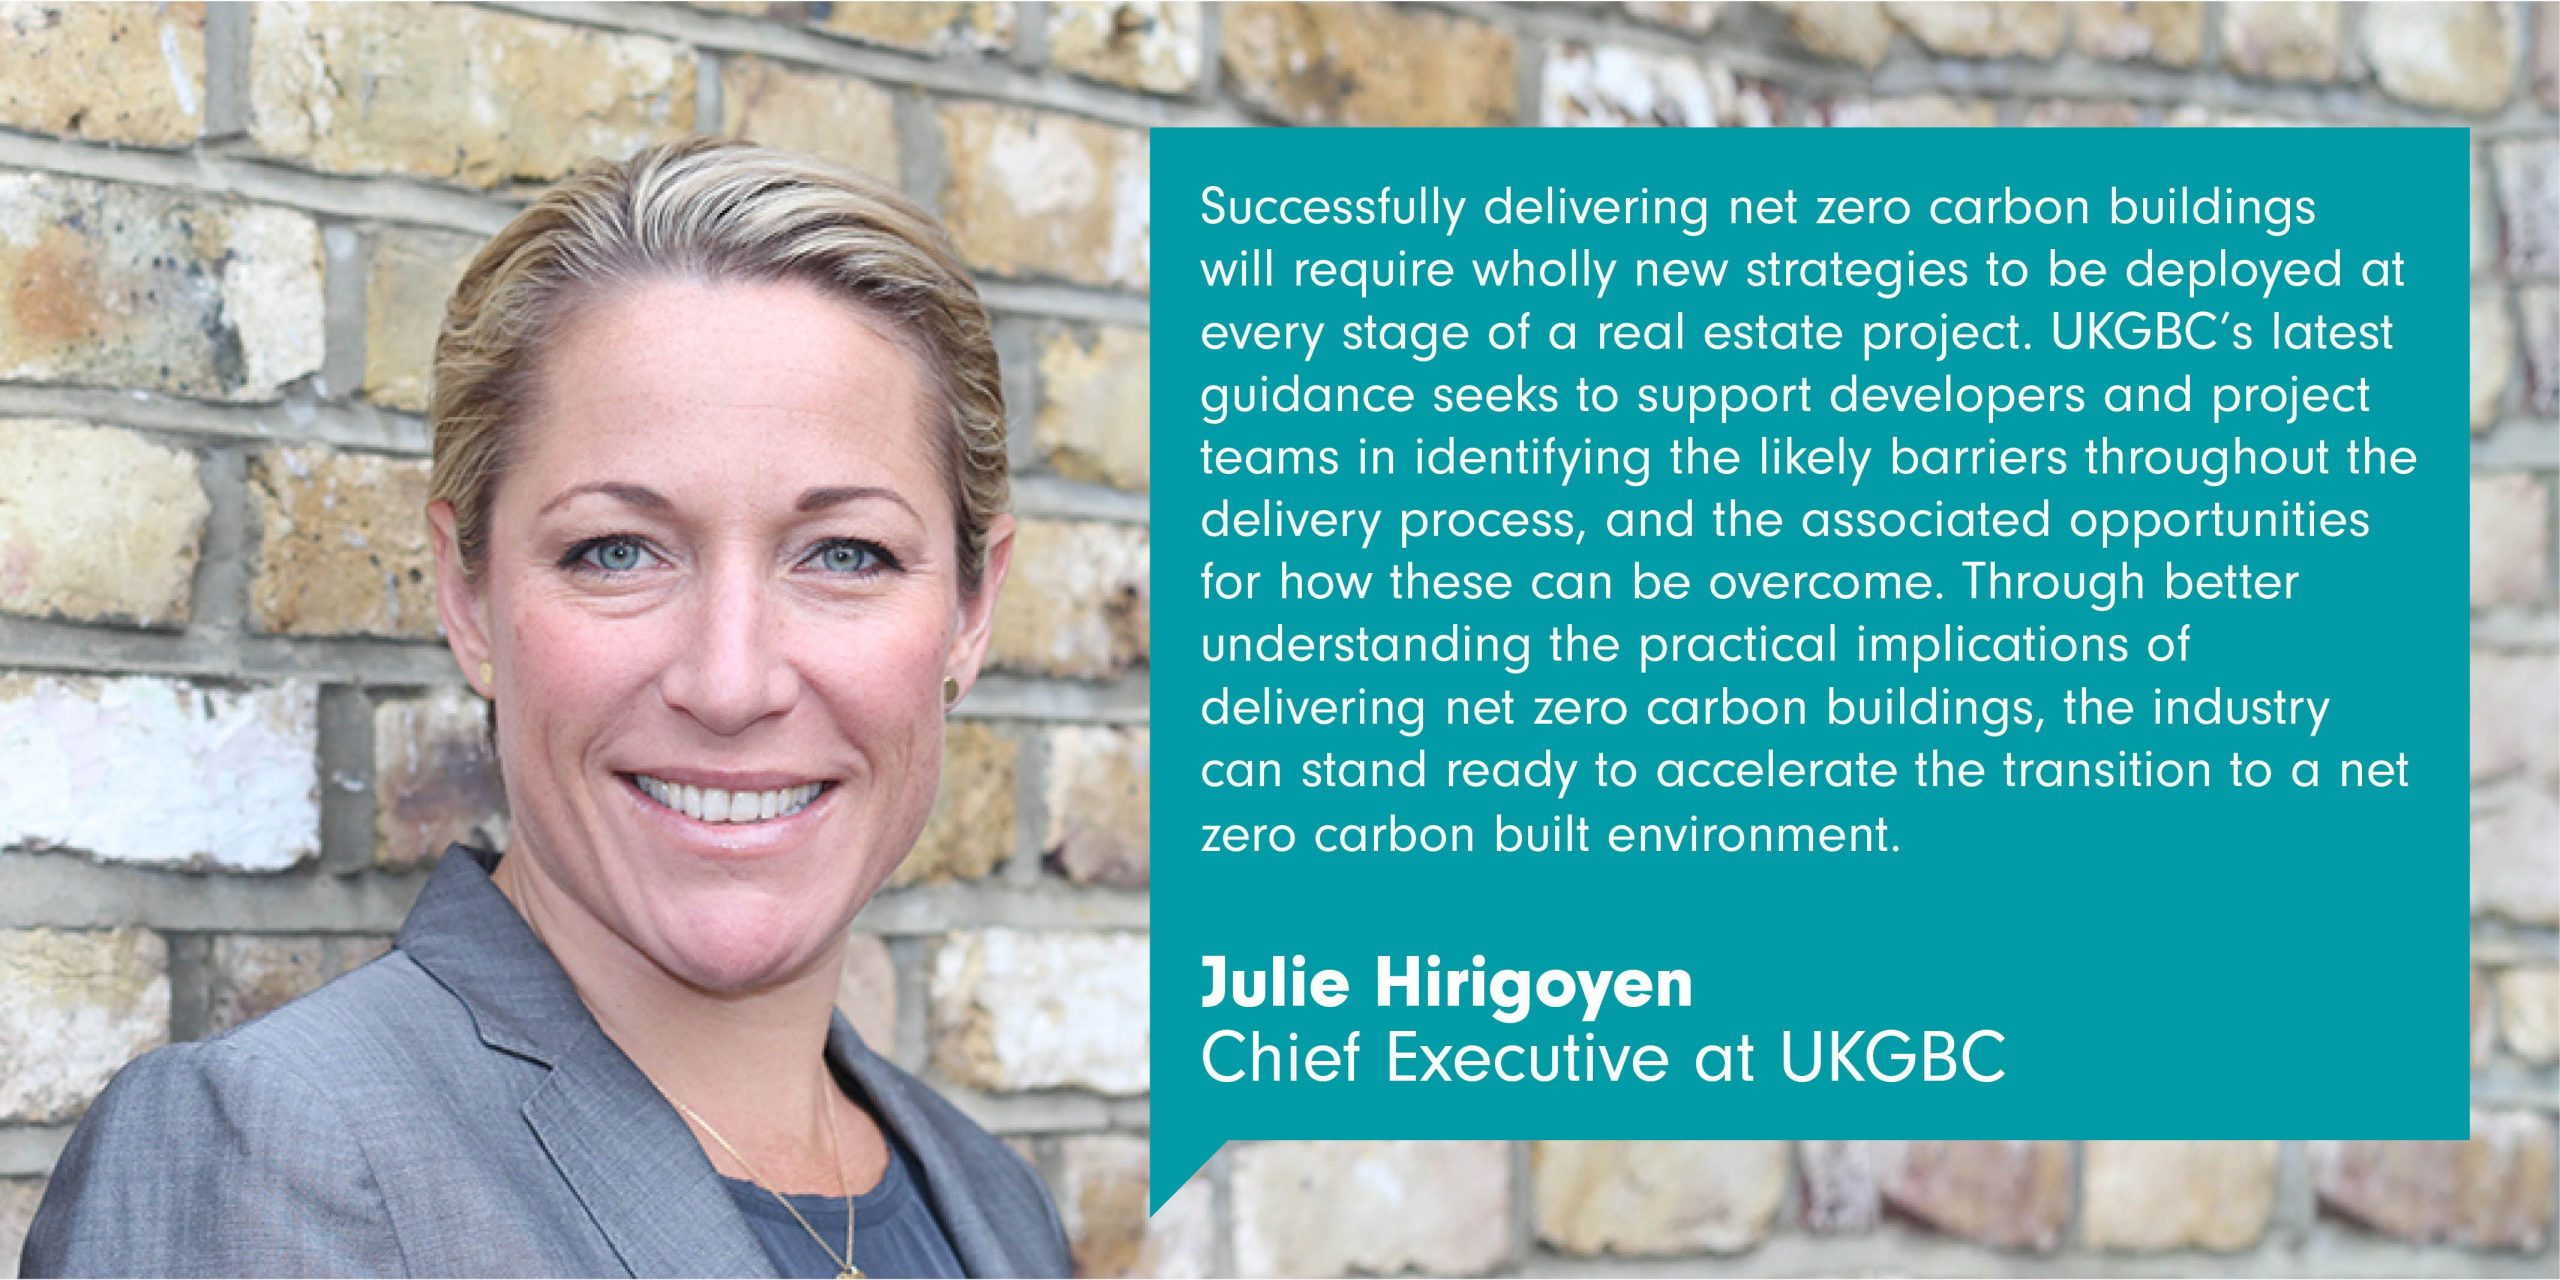 UKGBC publishes guidance to catalyse the delivery of net zero carbon buildings 1